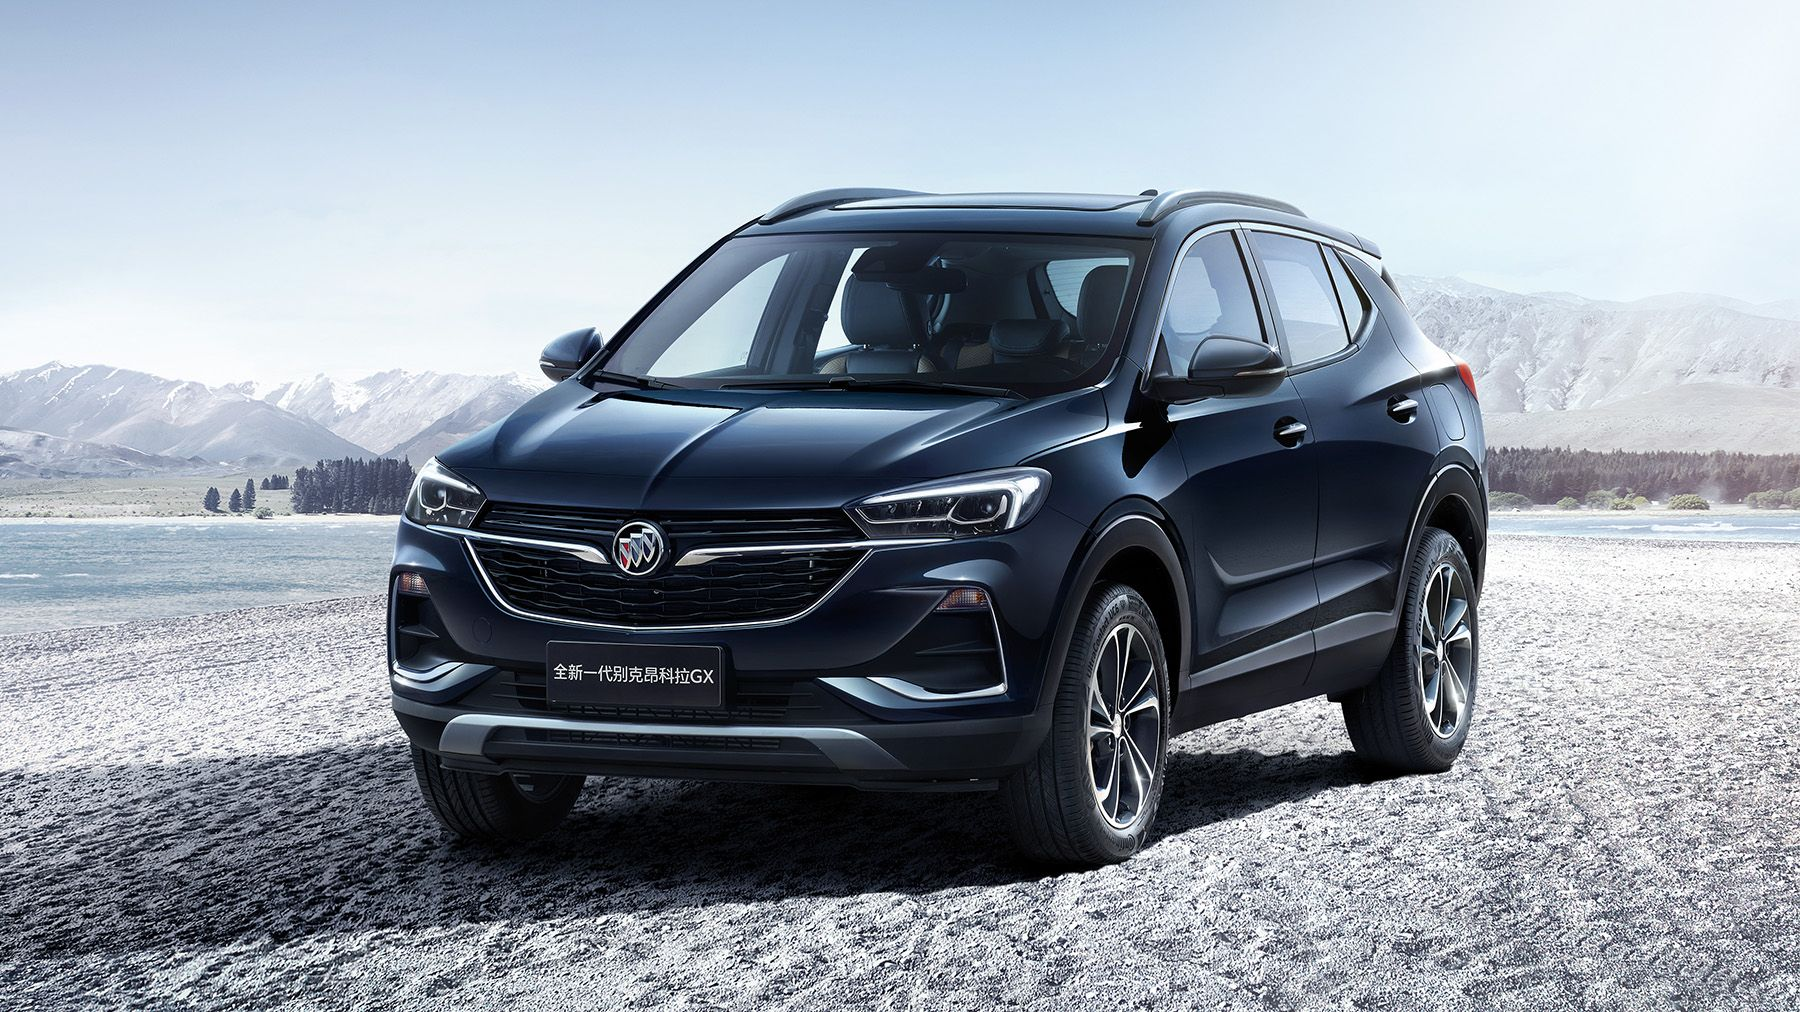 Buick Passenger Cars May Be On Their Way Out In Favor Of Crossovers And Suvs